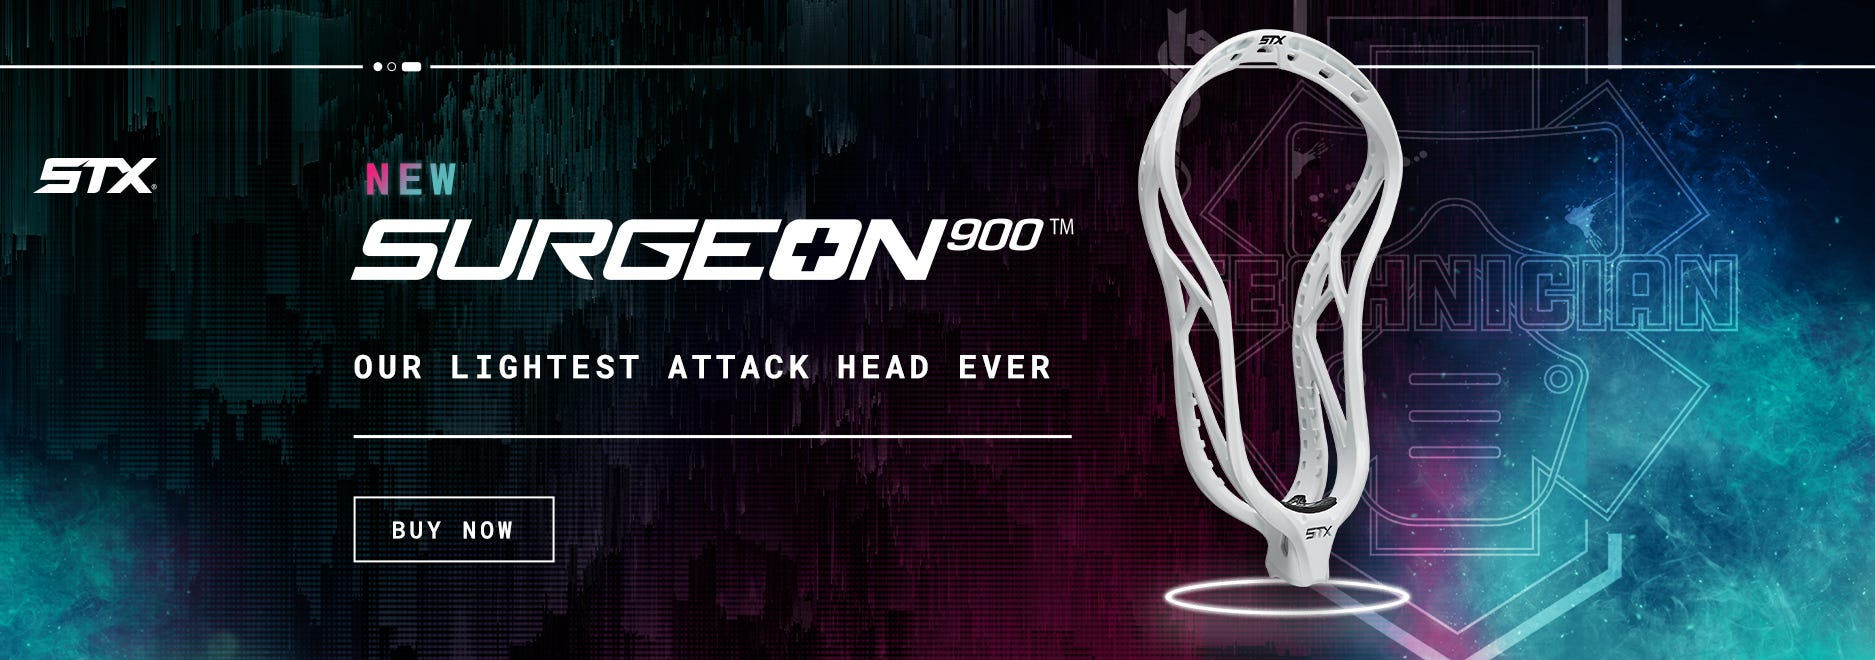 STX Surgeon 900 Head